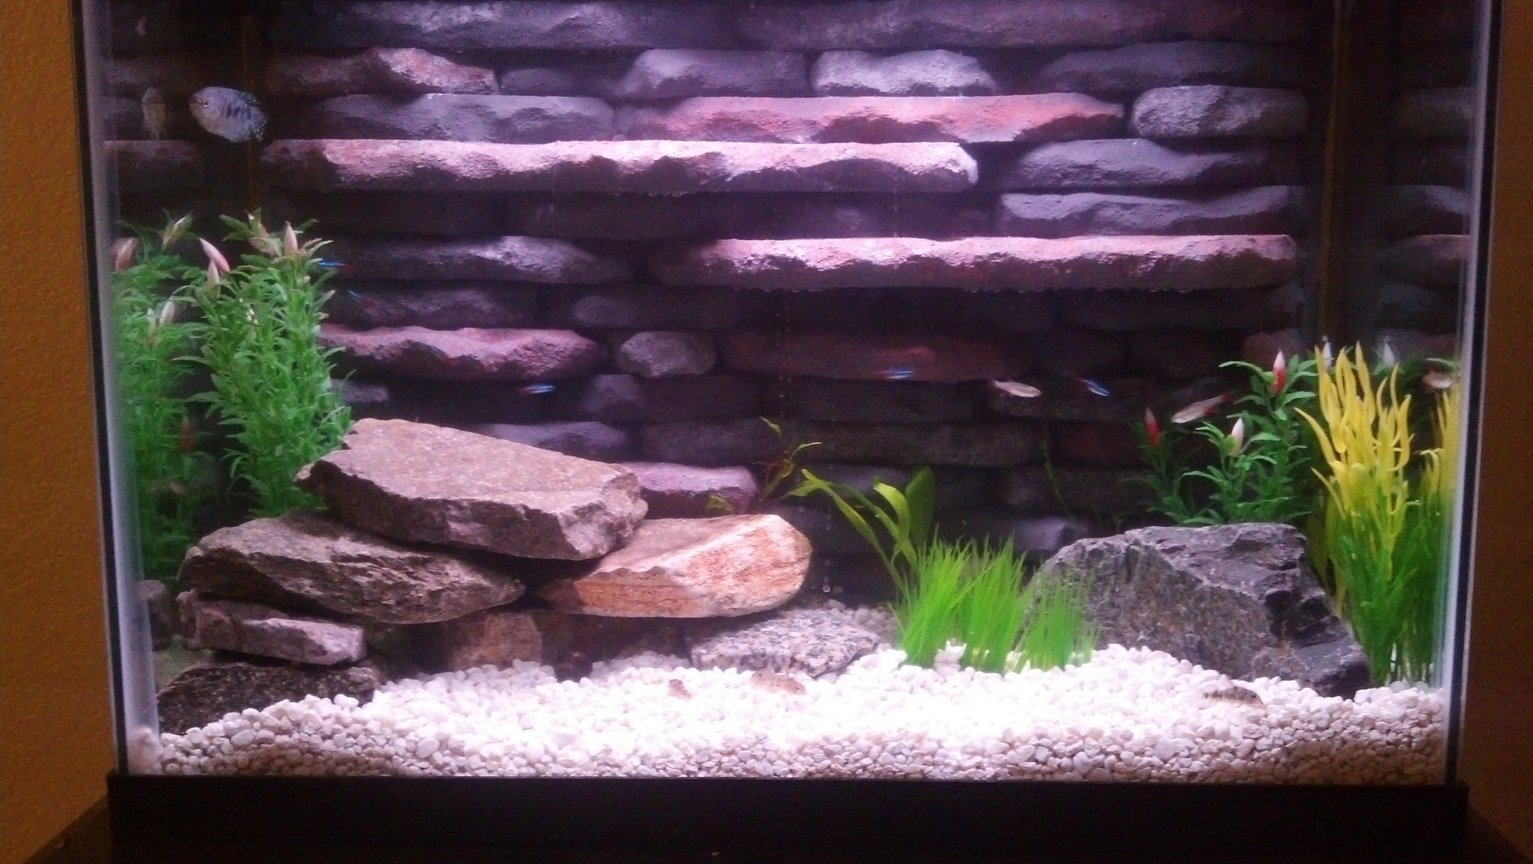 20 gallons planted tank (mostly live plants and fish) - 20 Gallon with both live and artificial plants. Custom 3d background and twin HOB filters and heater built in. Community tank with cardinal tetras, bloodfin tetras, nerite snails, gourami, ghost shrimp and peppered corys. Took a lot of time and effort to get this tank up and running but I think could compete with any smaller tank set up out there. Good example of making the best of what you have to work with. Would love feedback and opinions of this tank setup.